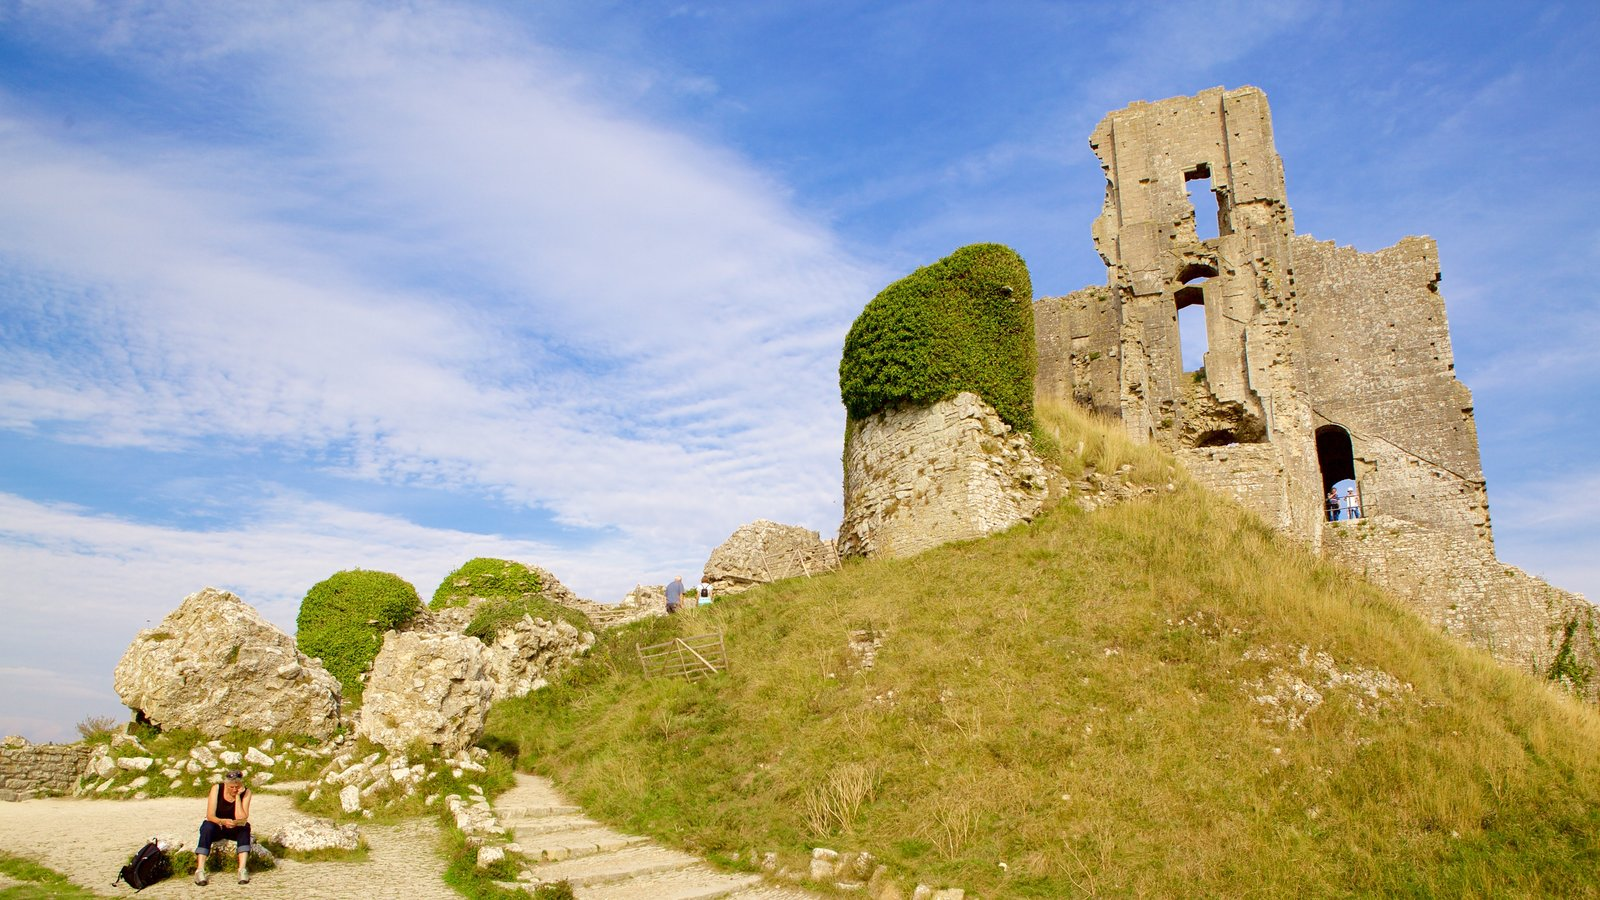 Corfe Castle featuring heritage elements, tranquil scenes and building ruins